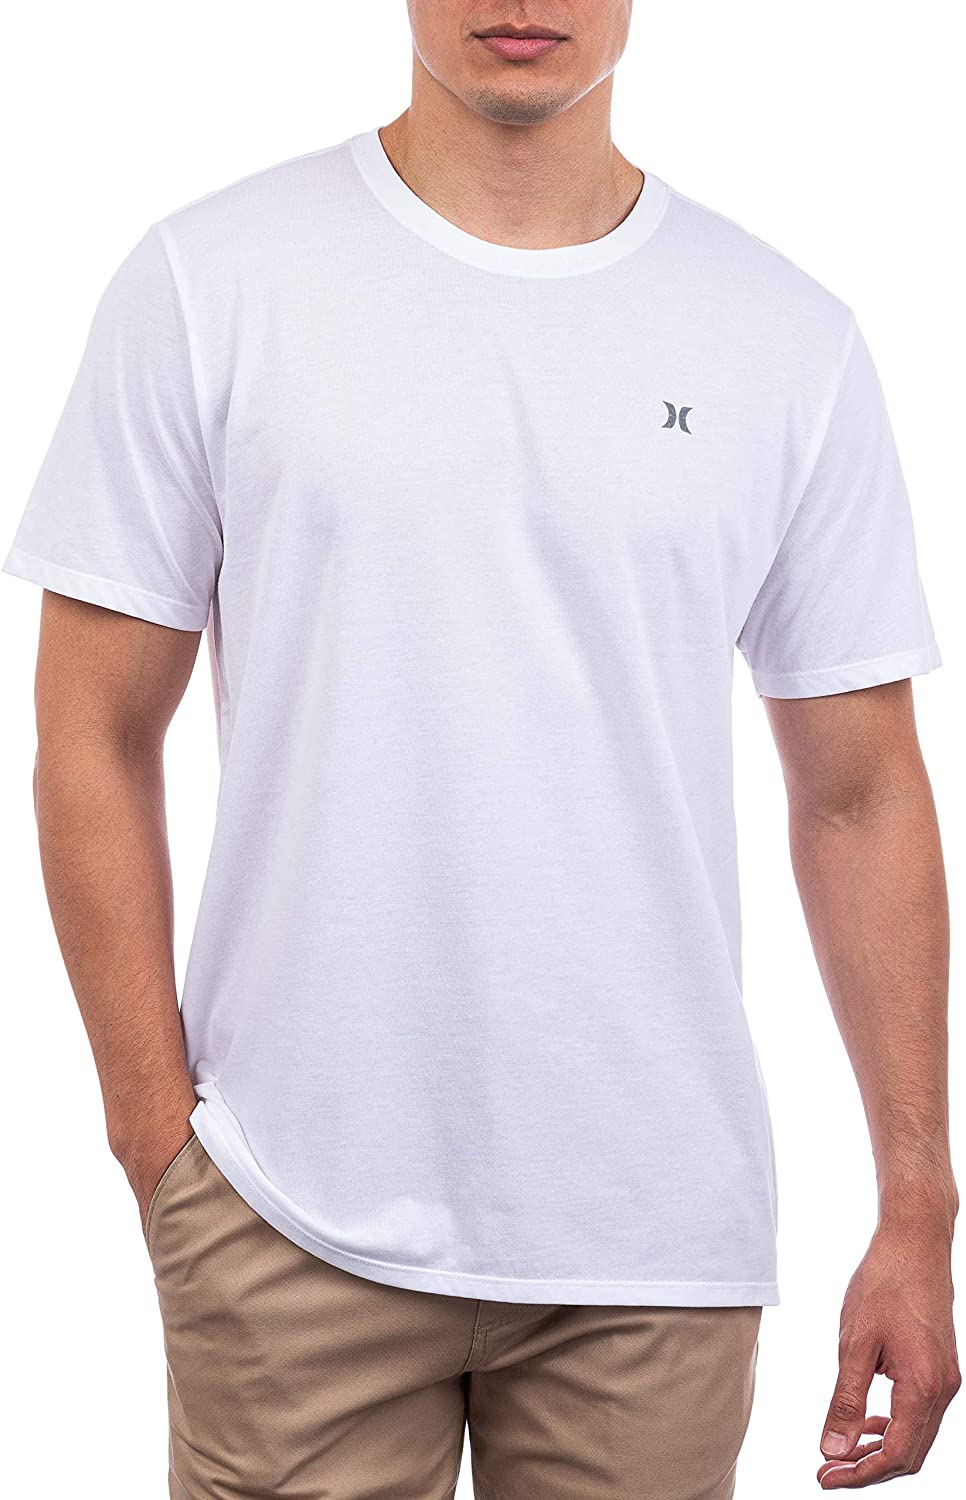 HURLEY DRI-FIT STAPLE ICON REFLECTIVE S/S